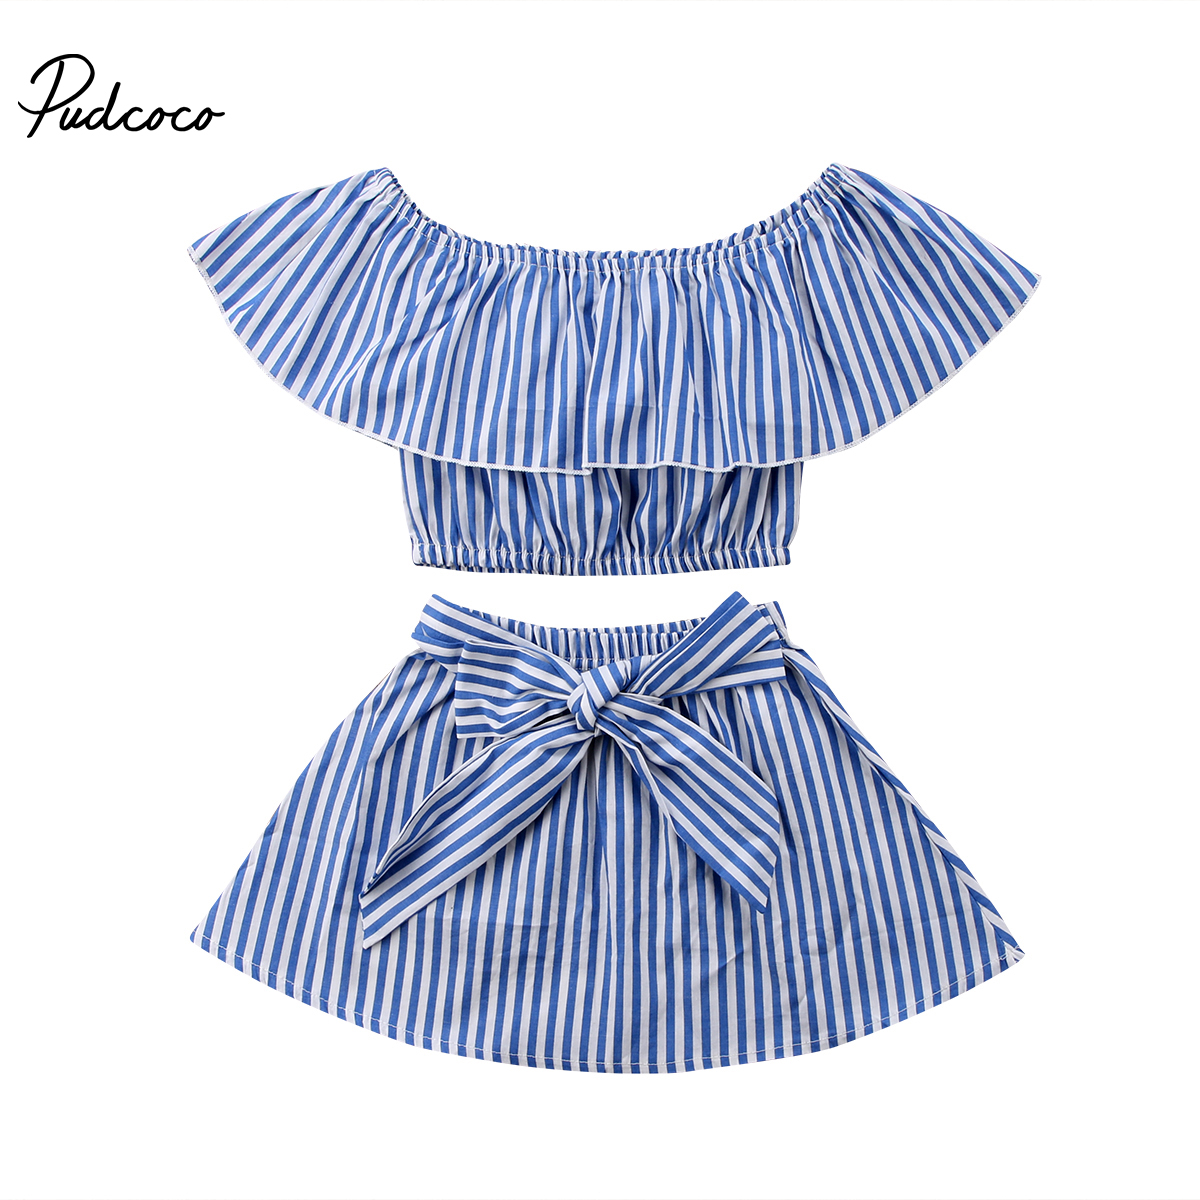 Kids Toddler Girl Summer Clothing Set Ruffle Off-Shoulder T-shirt Top+Bow Skirt Tutu Dress Stripe Baby Clothes Outfit купить в Москве 2019